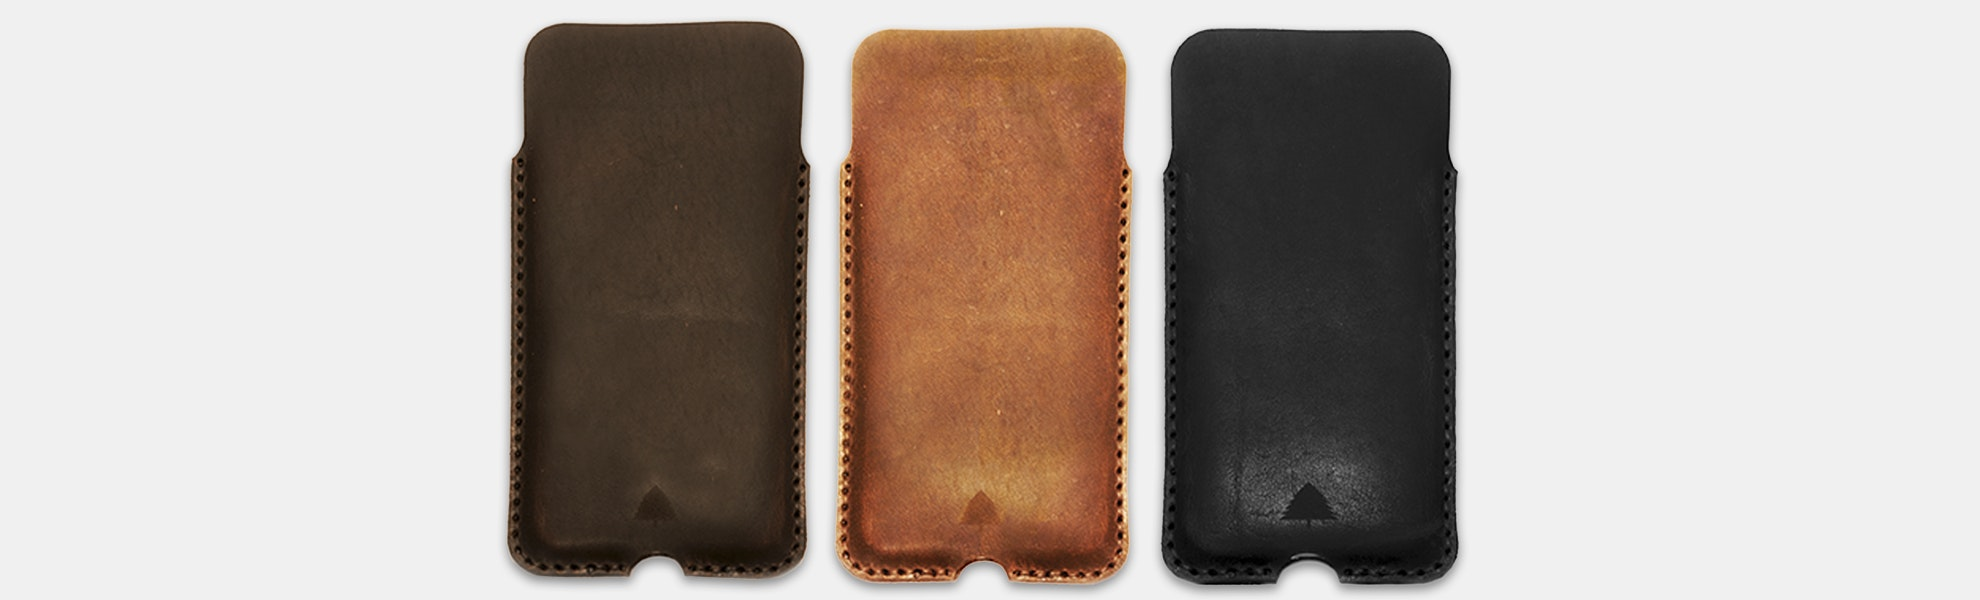 Pine Top Leather iPhone Cases